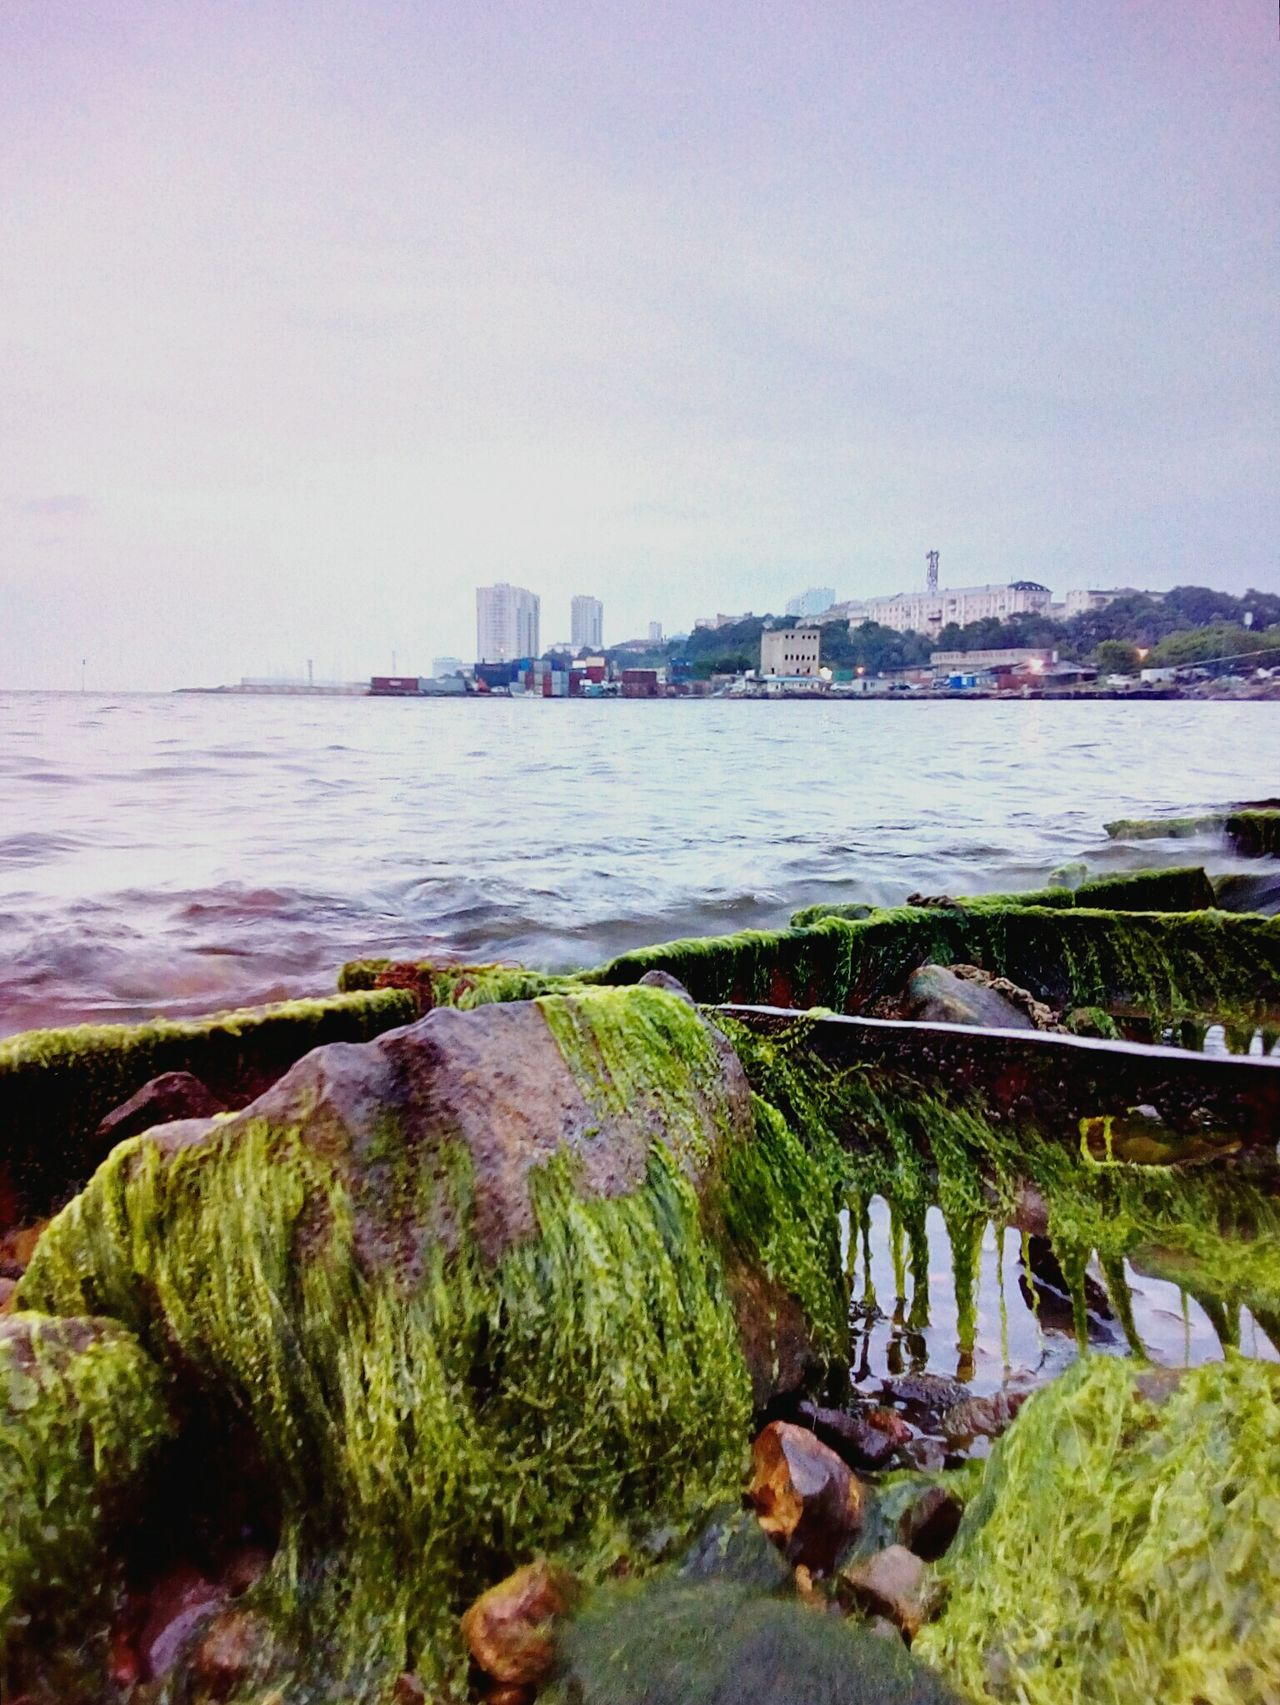 City's beach at the time of low tide Seascape Sea Japan Sea Beach Low Tide Stones Ship Wreck Rusty Marine Plants Green Evening Light Sky Horizon Over Water Buildinds Vladivostok